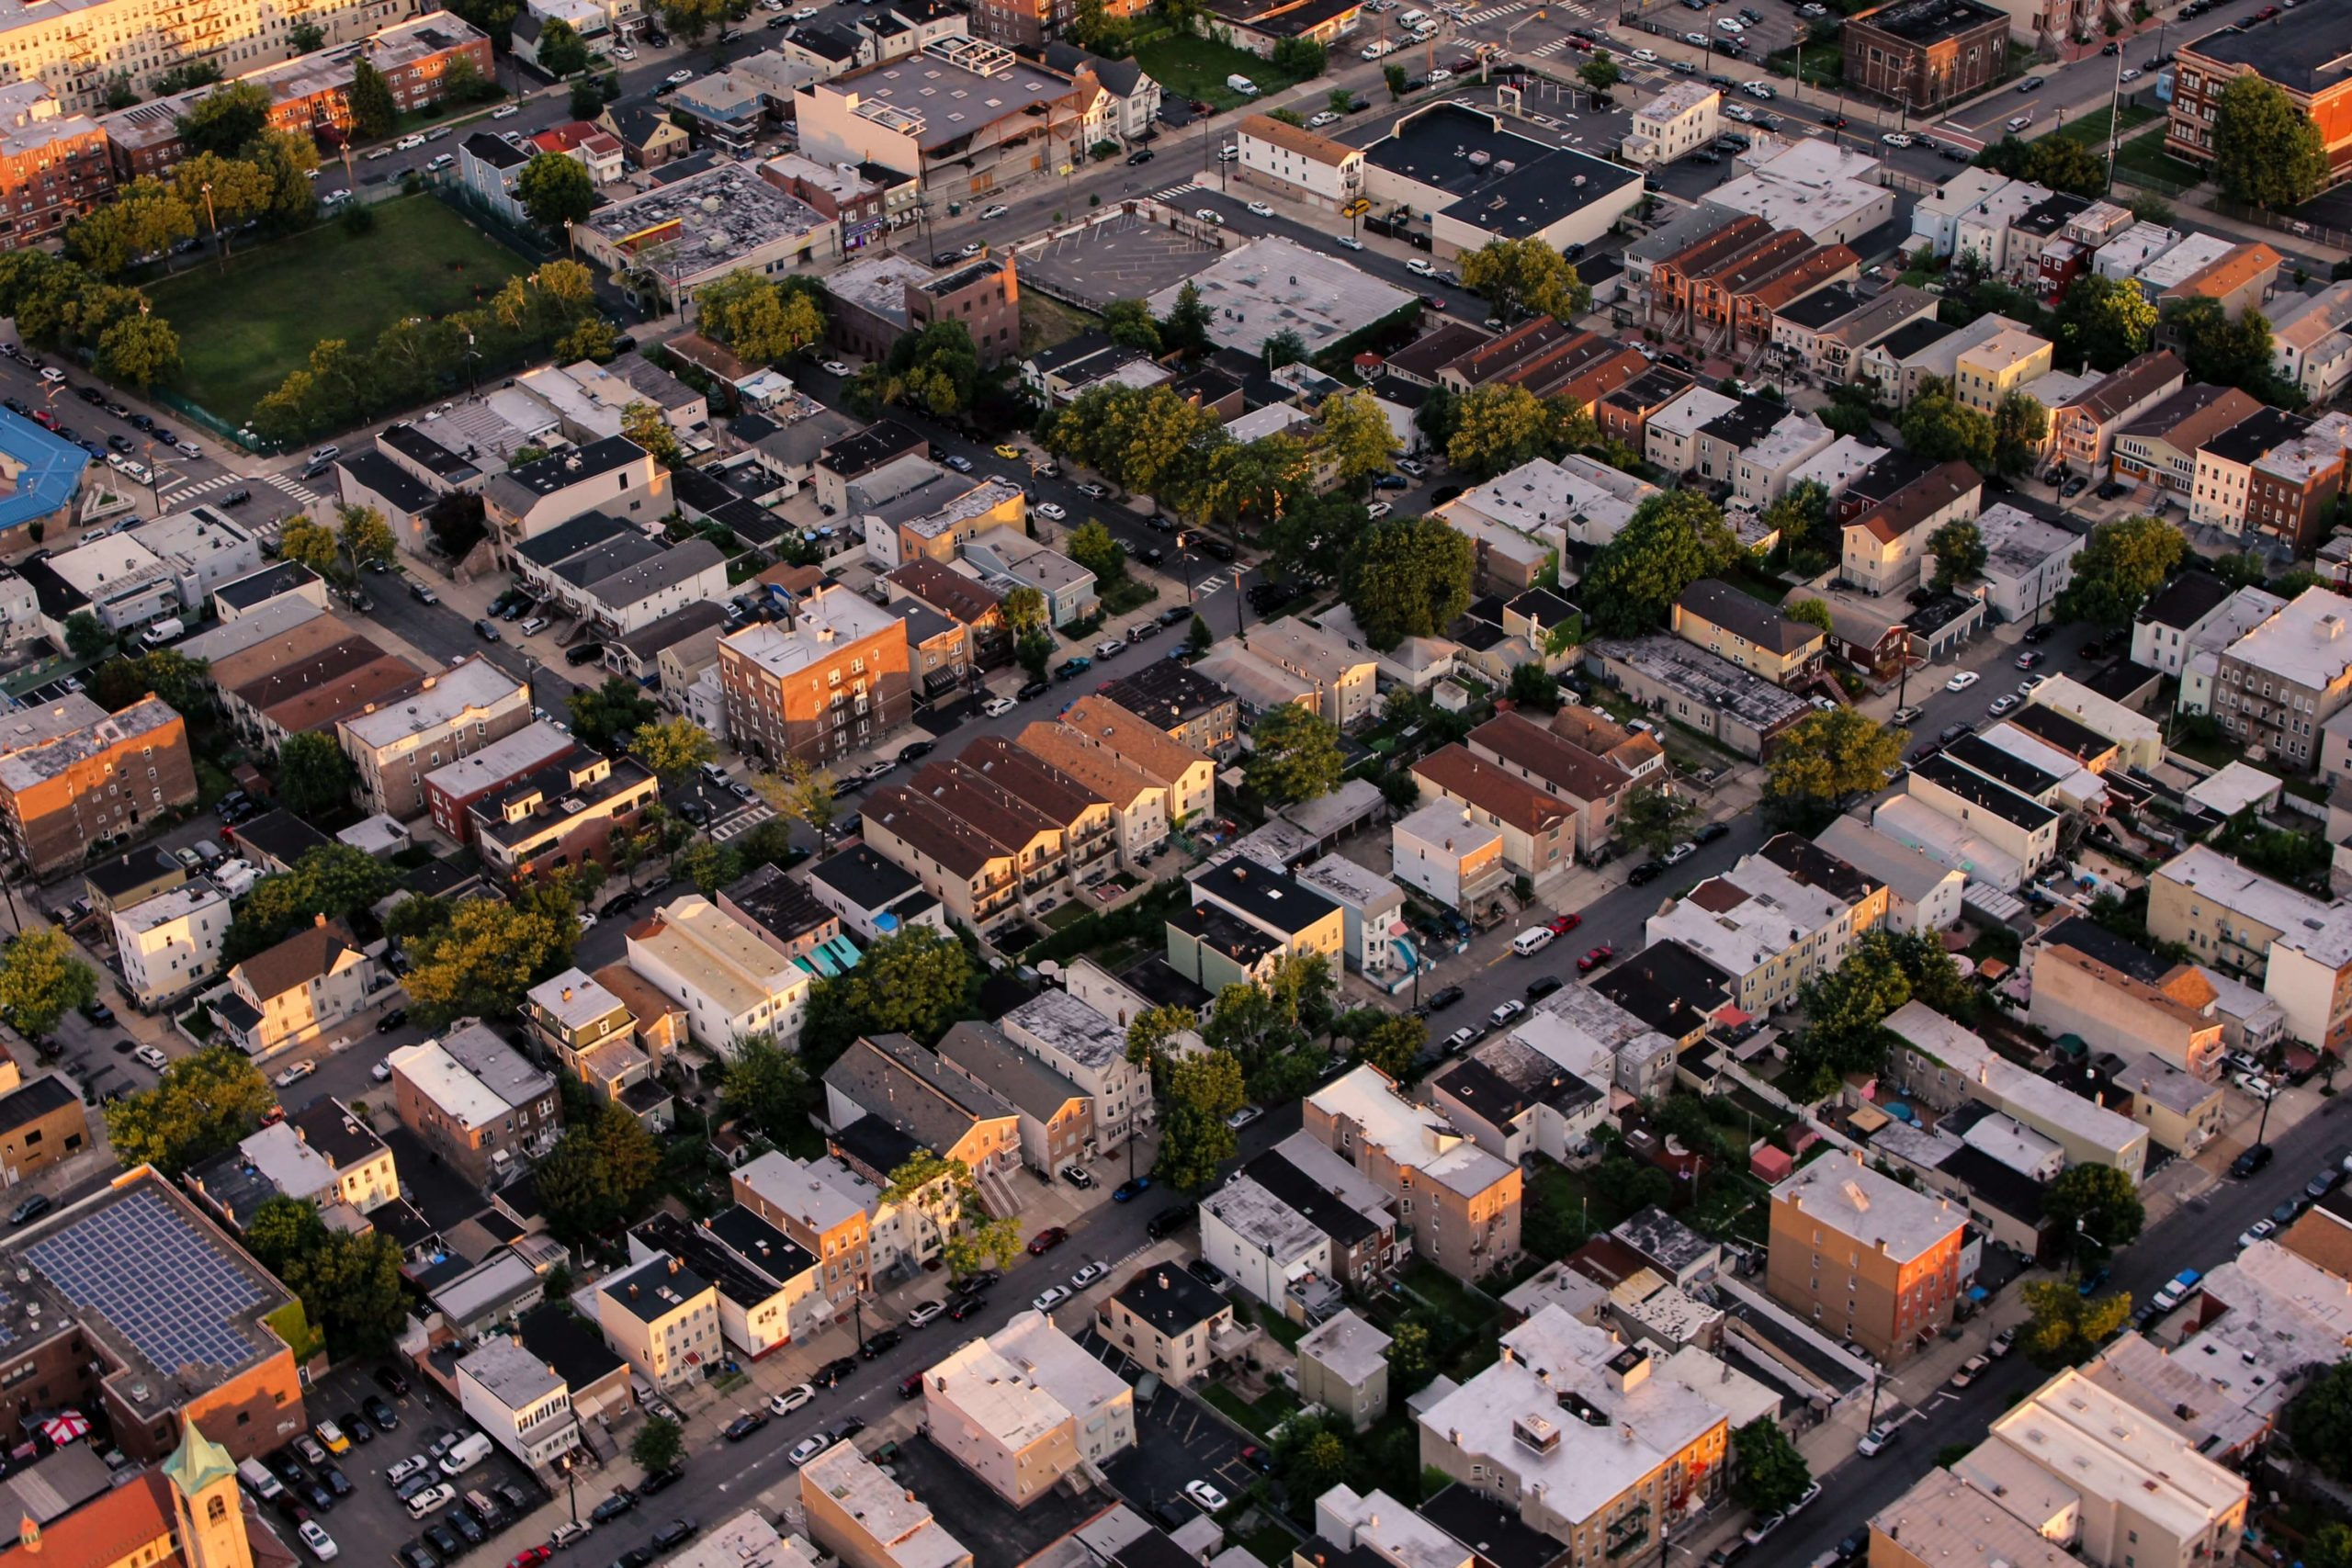 Aerial view of a neighborhood with houses, trees, parks, and streets (Photo by Brandon Jacoby on Unsplash)